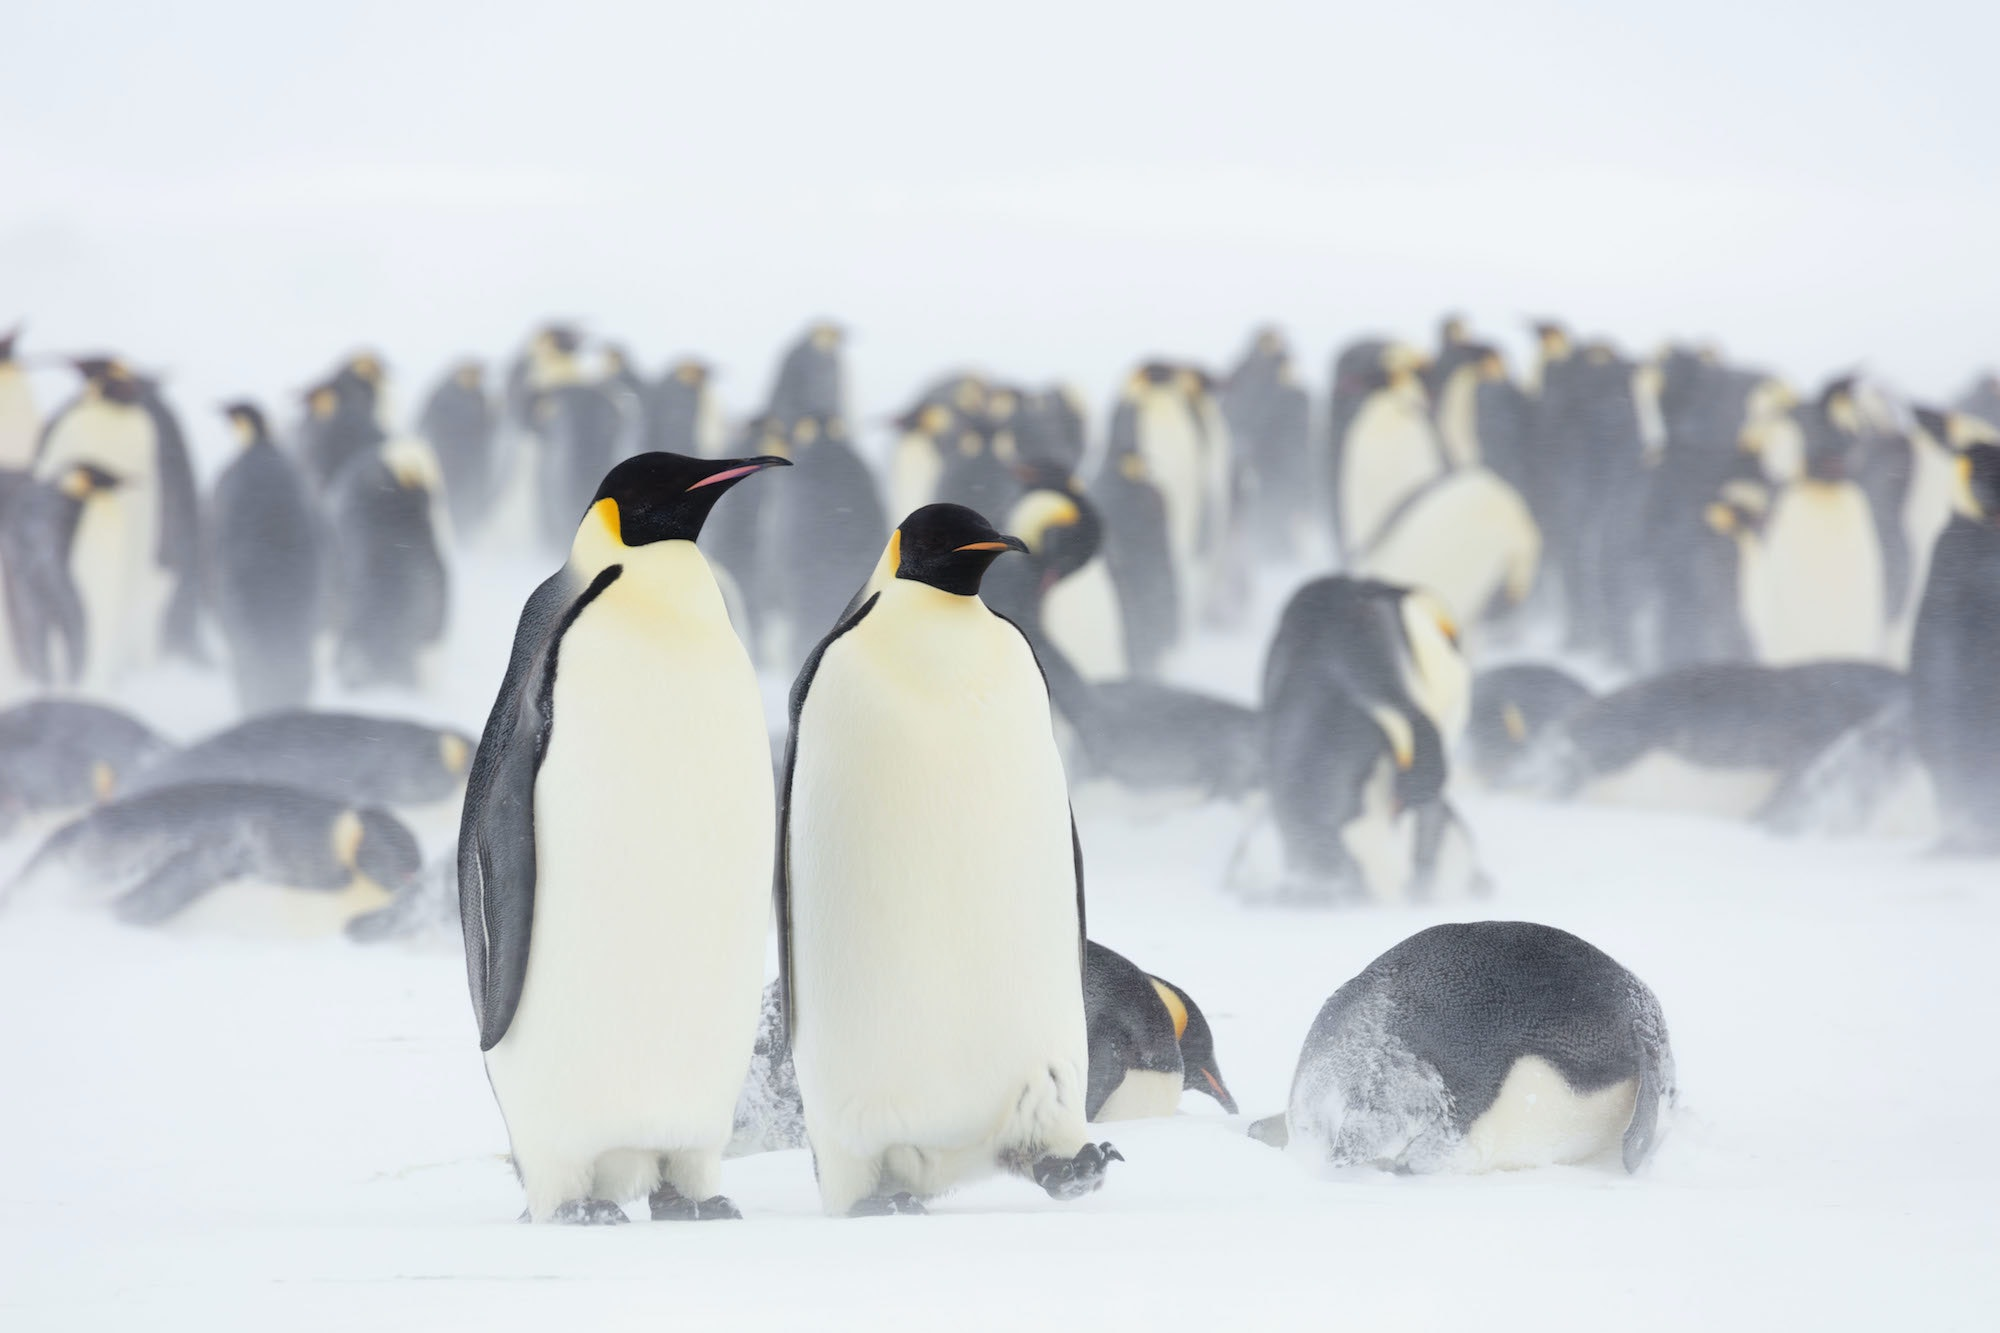 Emperor penguins leave the colony for months at a time and travel long distances across ice to find nourishment to feed their young.